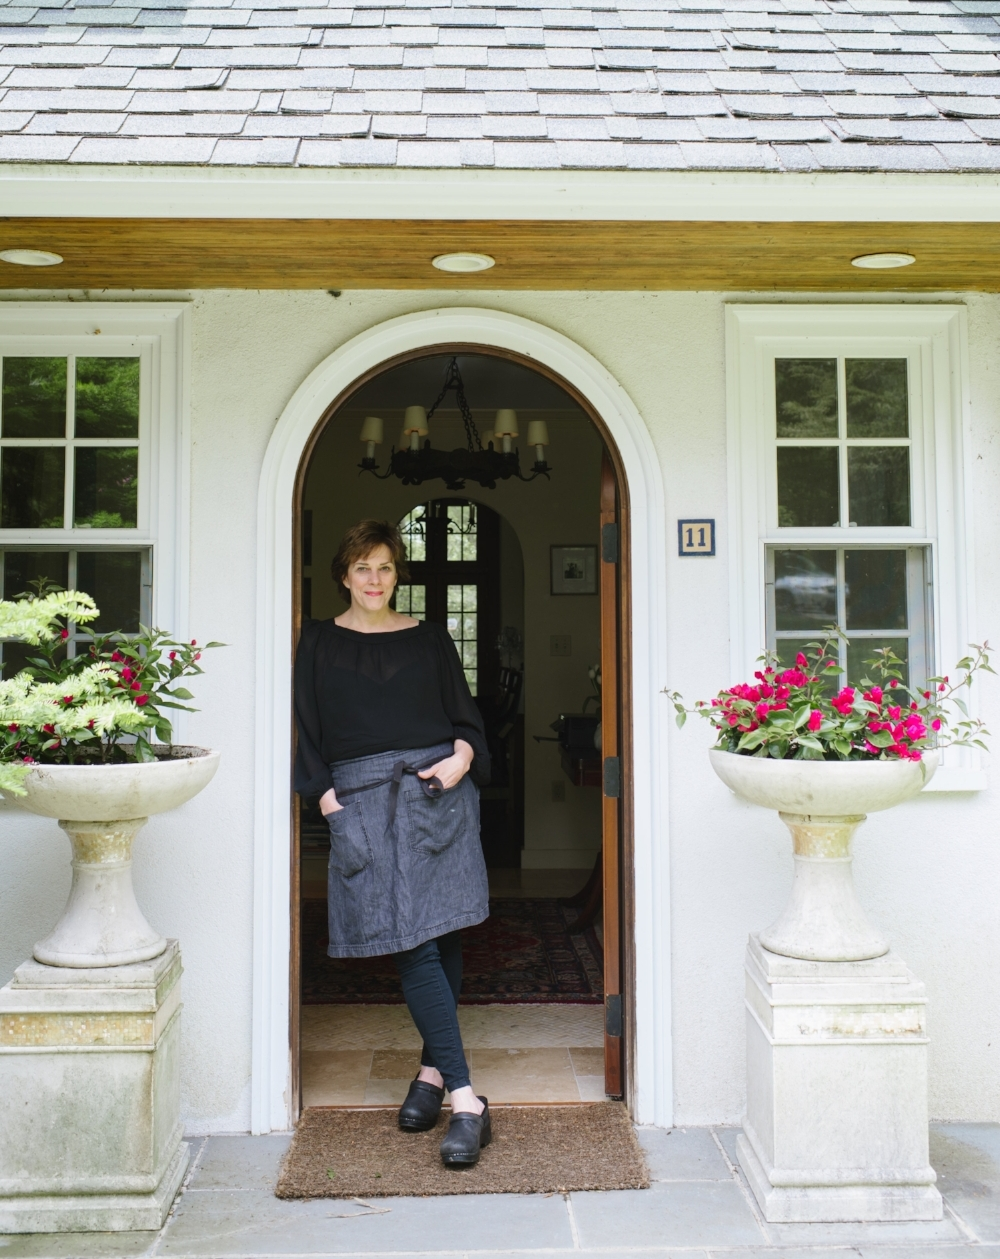 Lynch in the doorway of her Annisquam home. (Photograph by Katie Noble)